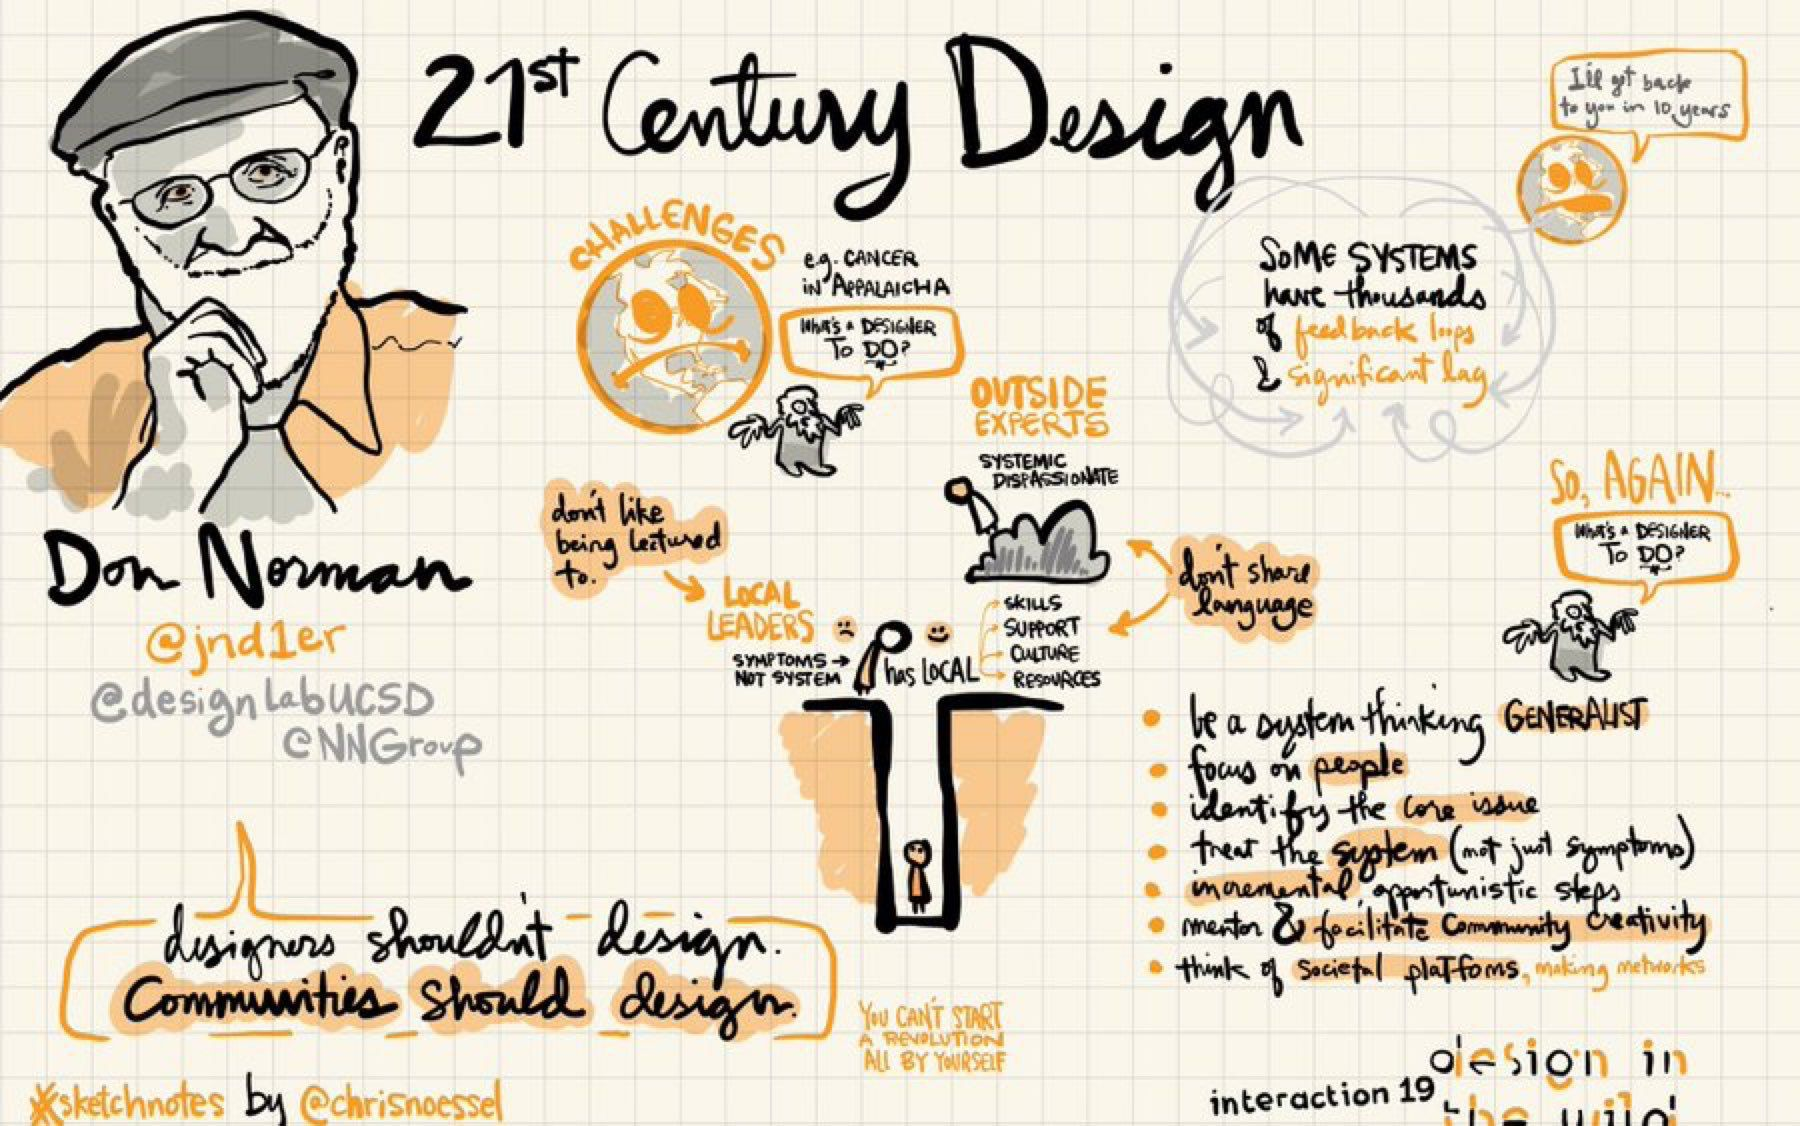 Don Norman sketchnote from DesignLab UCSD